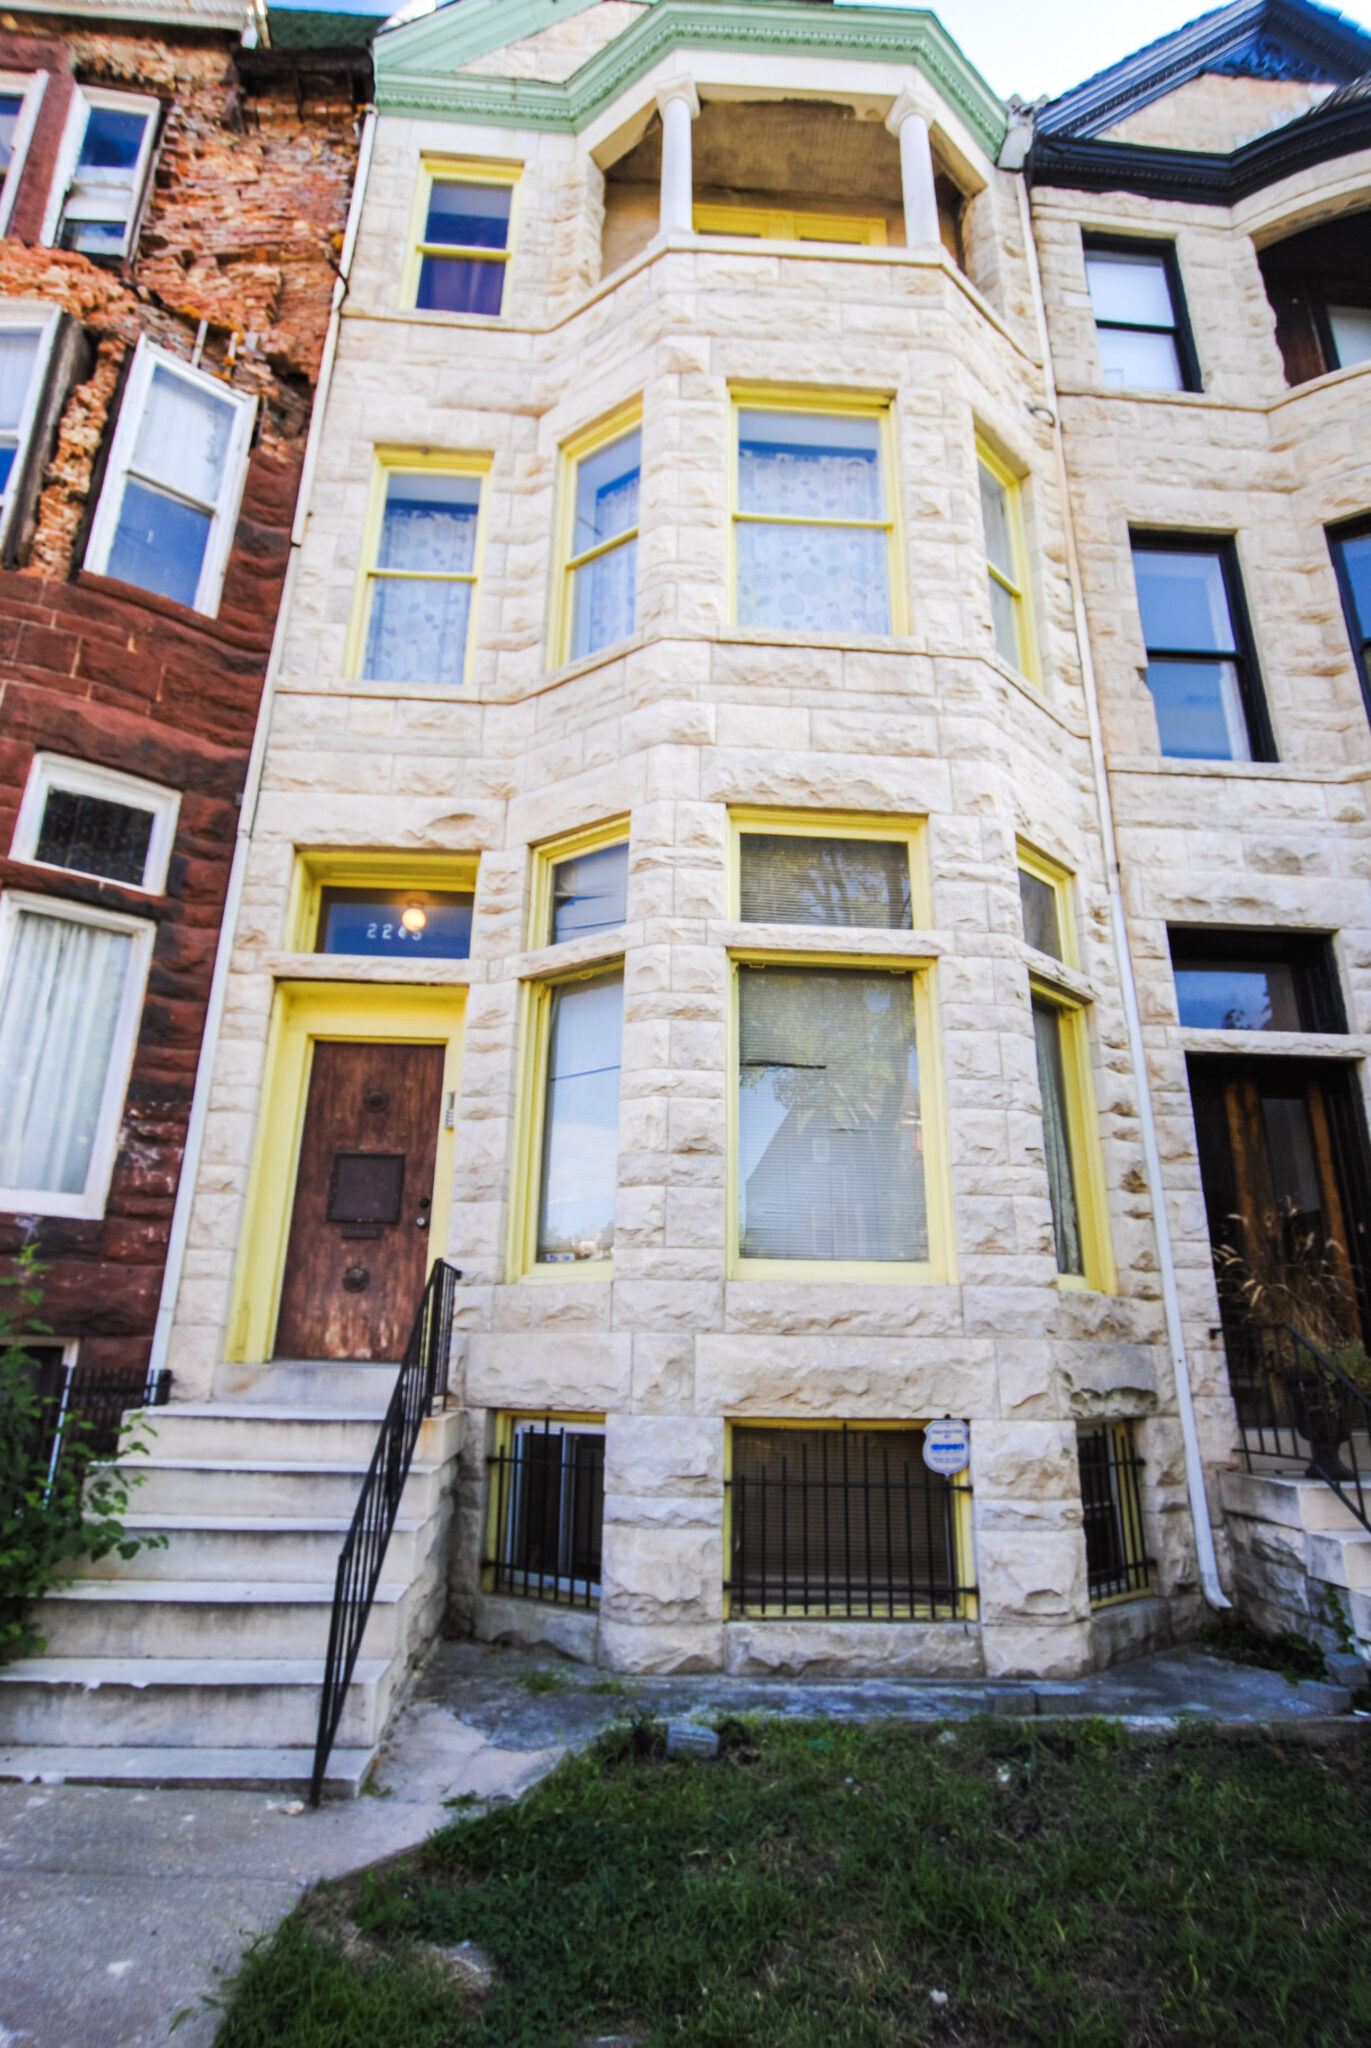 2245 Eutaw Place: 3 Apartments in Historic Reservoir Hill